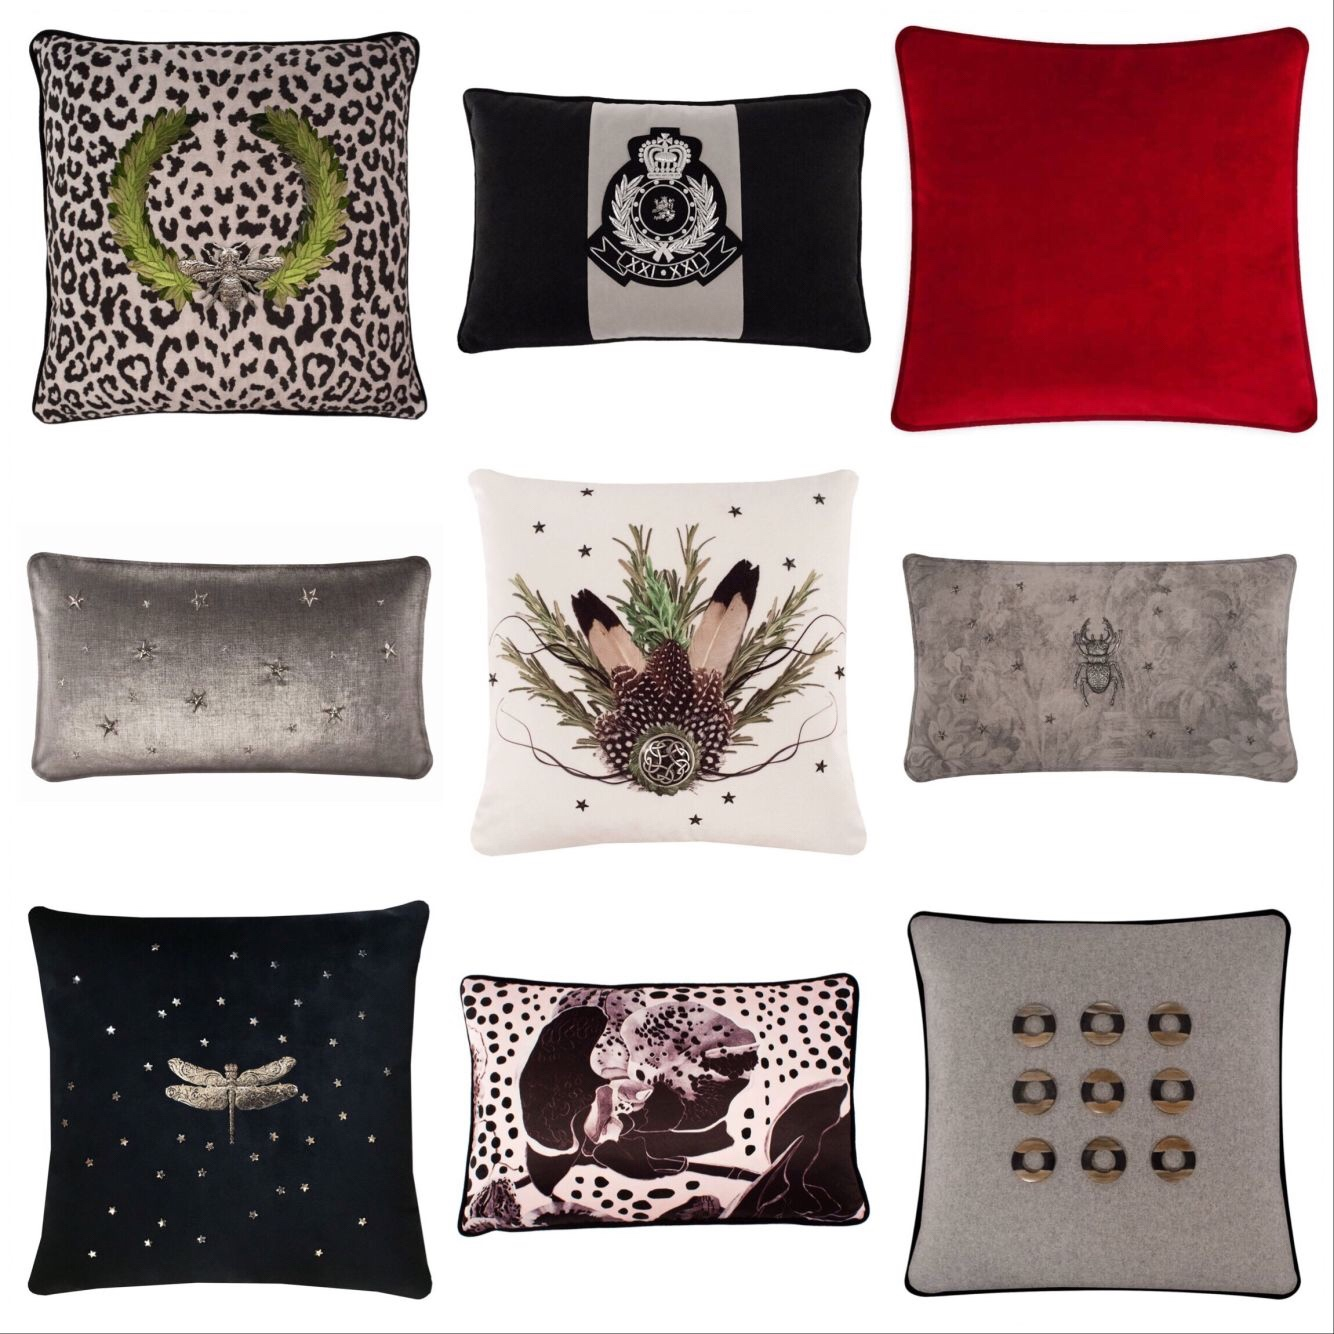 Unique Luxury Throw Pillows from Muir Mont